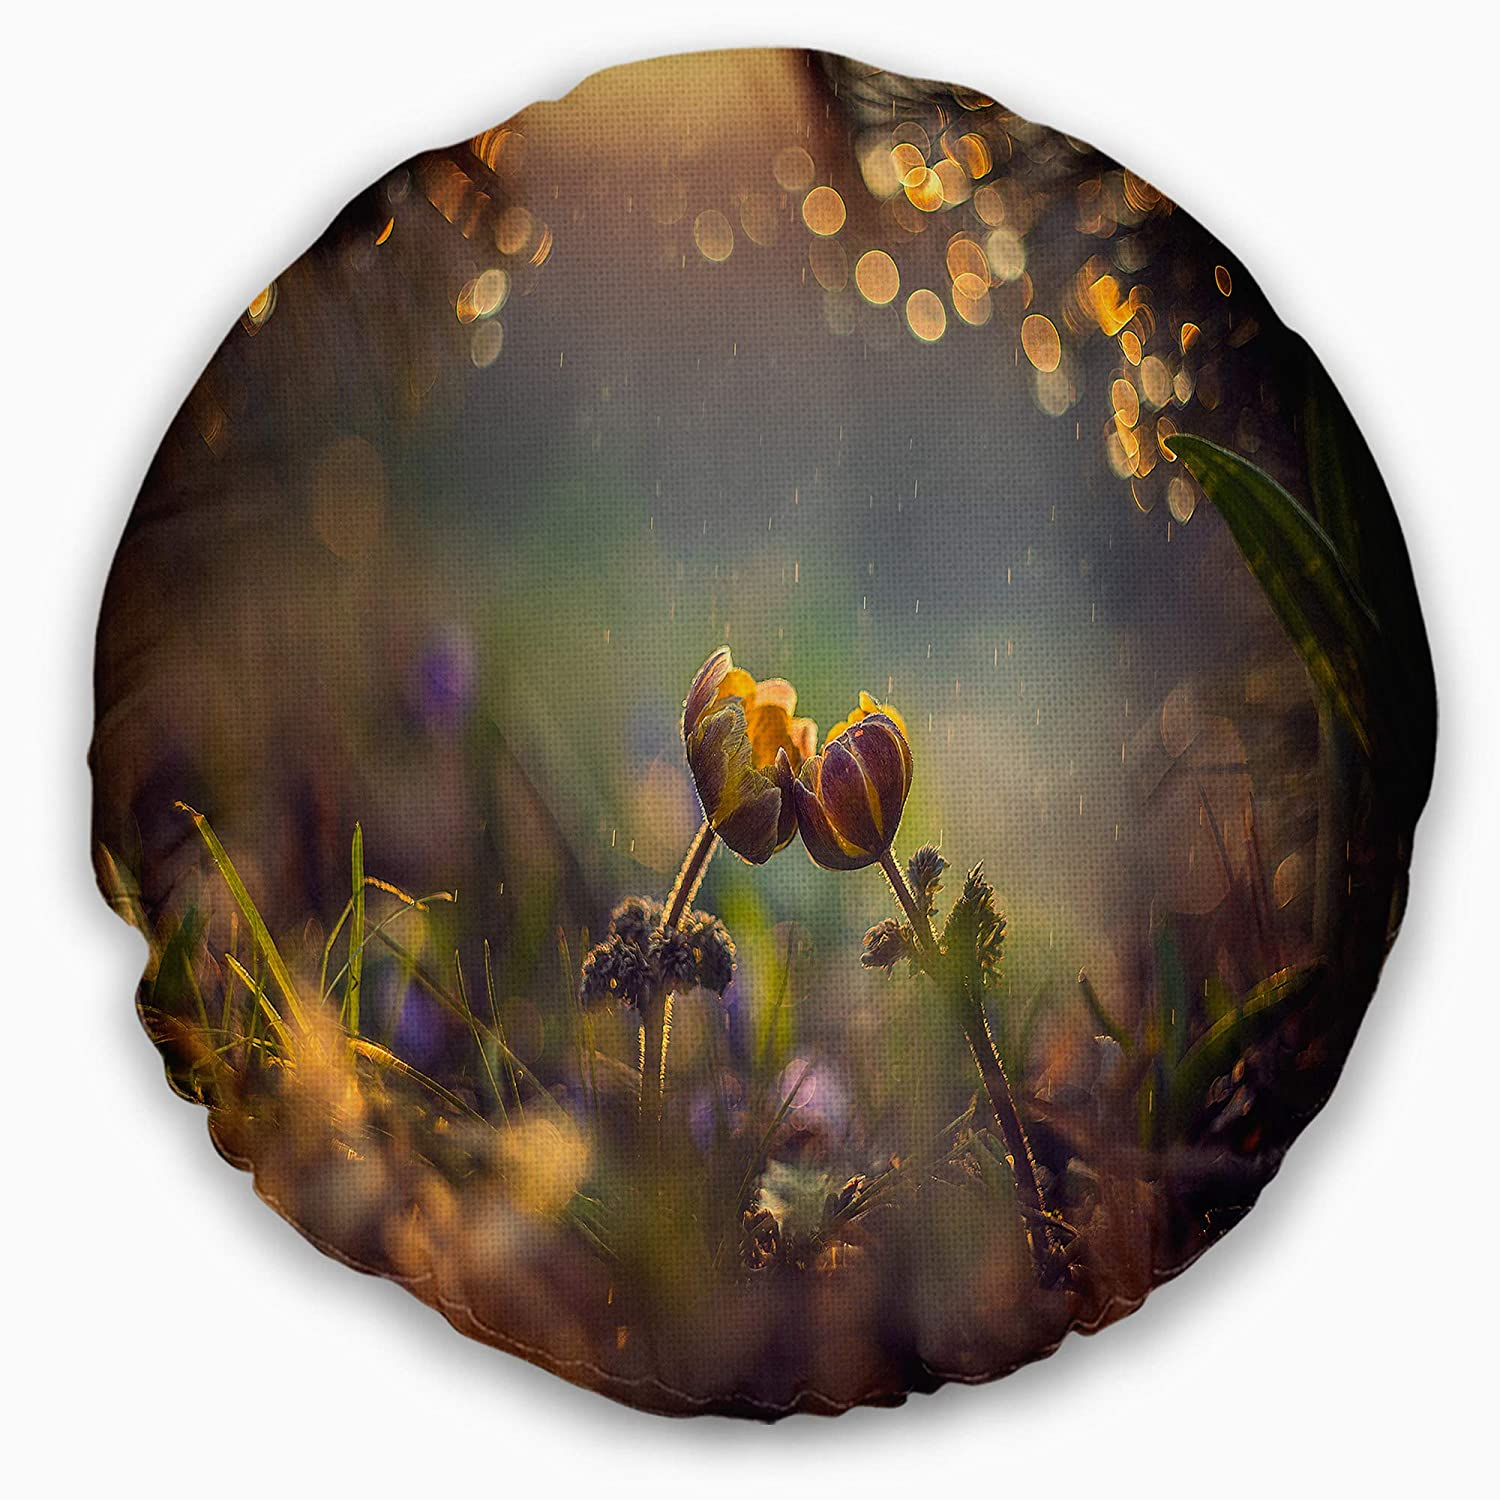 Sofa Throw Pillow 20 Designart CU6925-20-20-C Two Spring Flowers Floral Round Cushion Cover for Living Room